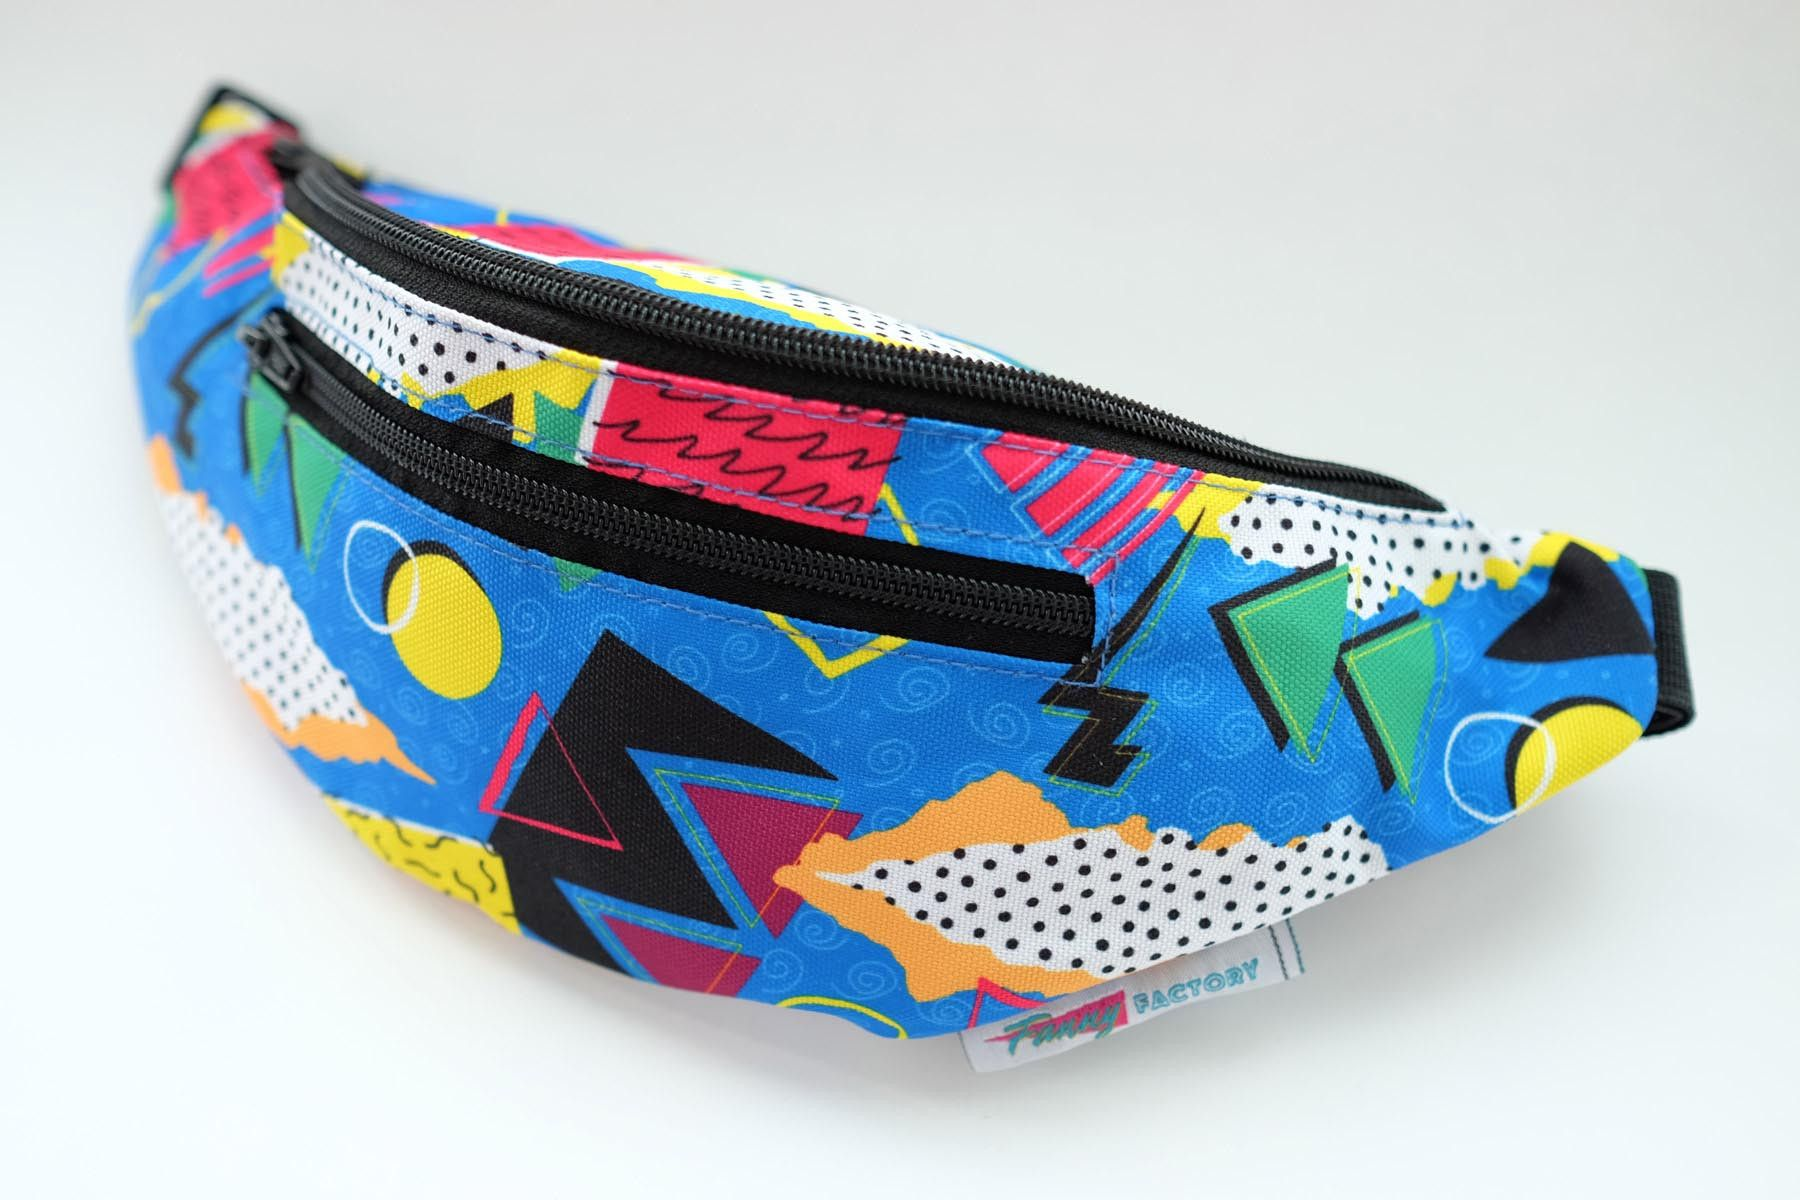 Saved by the Bell esque fanny pack with a blue background and fun retro prints